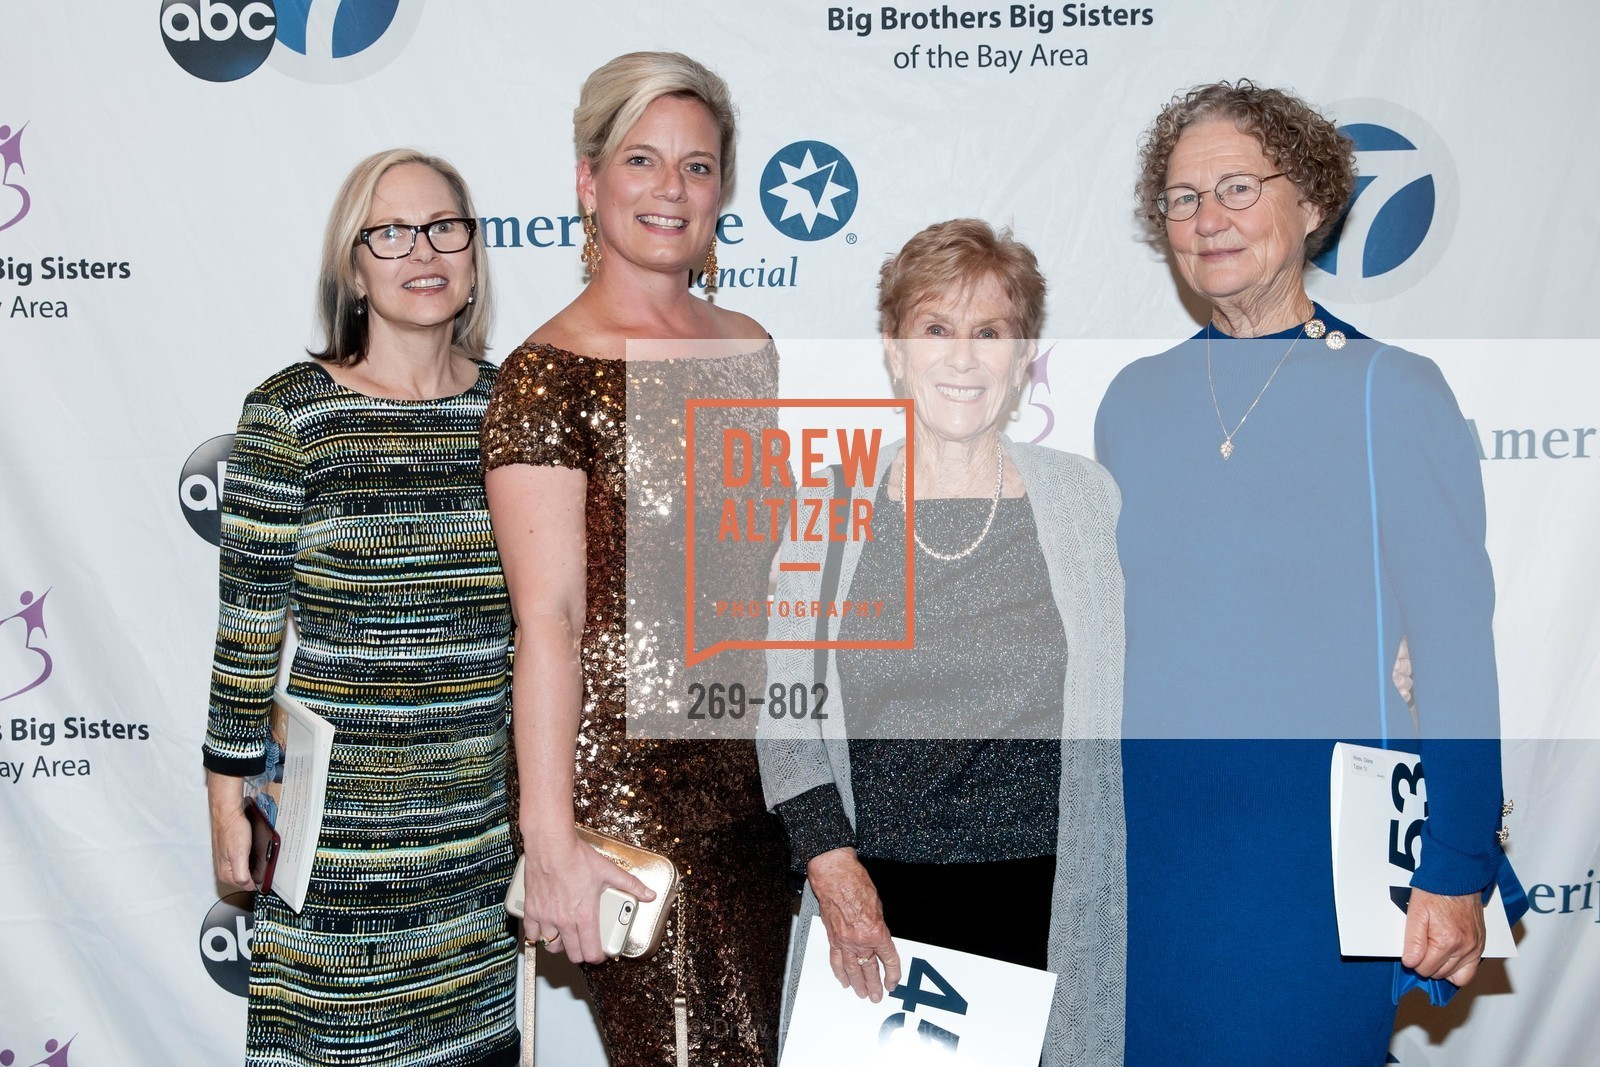 Joan Yokom, Michelle Alberda, Mary Ann Garvey, Diane Hinds, MR PORTER Celebrate The San Francisco Issue of The Journal, US, April 23rd, 2015,Drew Altizer, Drew Altizer Photography, full-service agency, private events, San Francisco photographer, photographer california